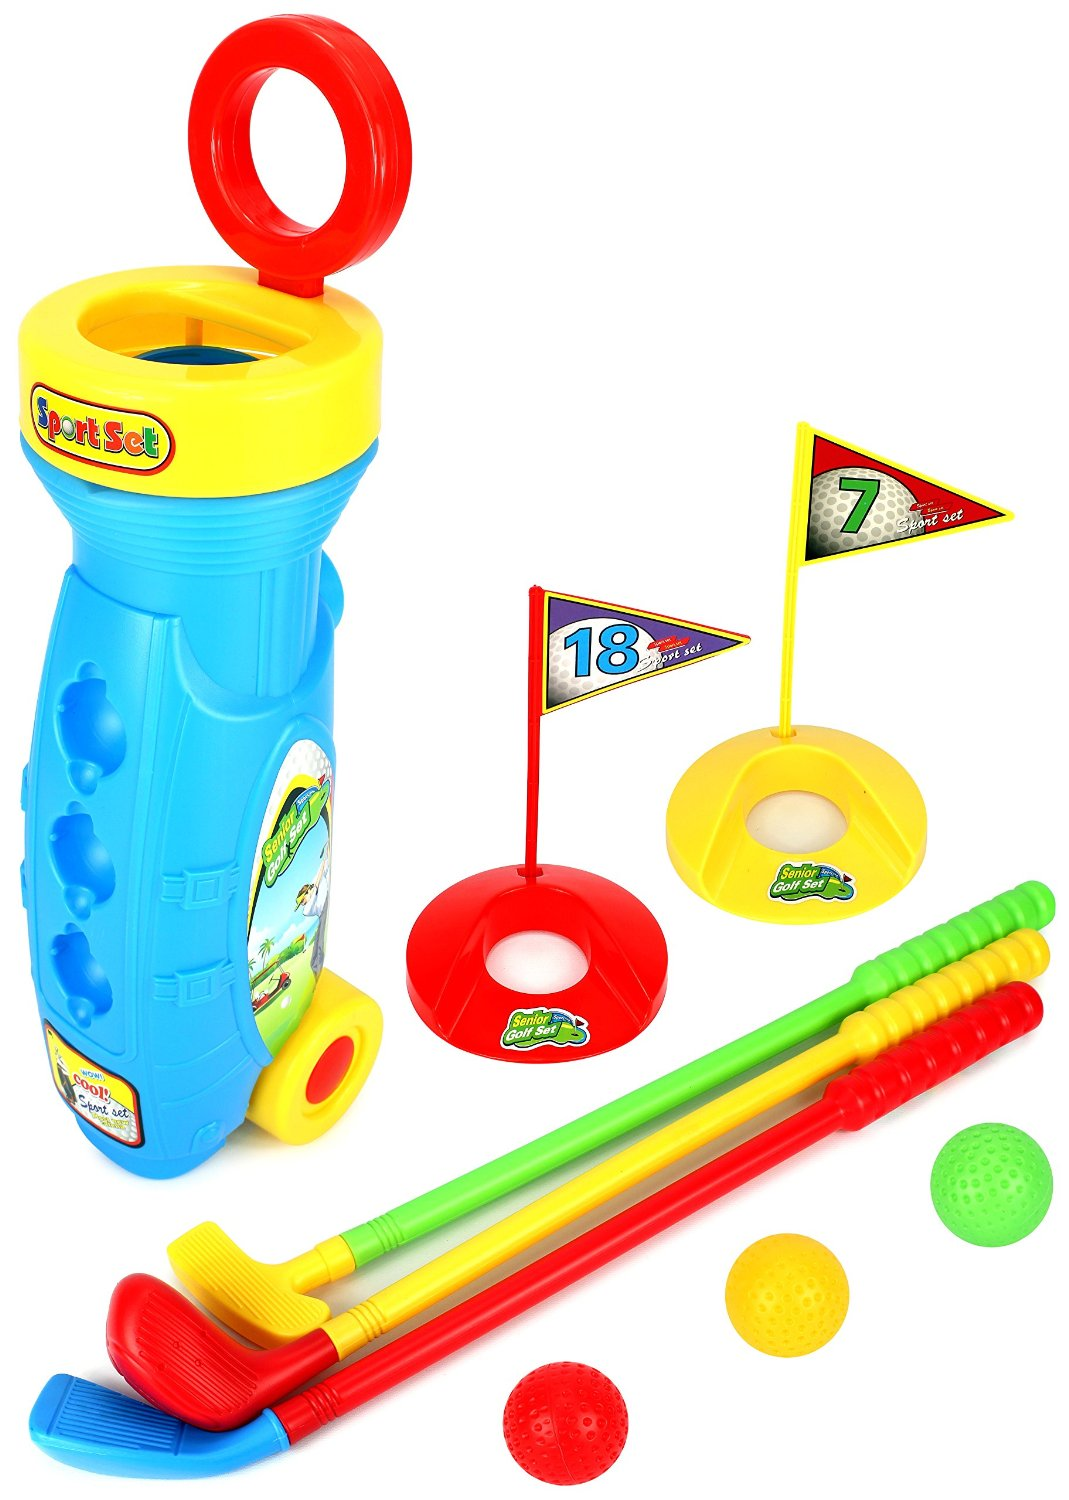 Velocity Toys Golf Master Sport Children's Kid's Toy Golf Play Set w  3 Balls, 3 Clubs, 2... by Supplier Generic